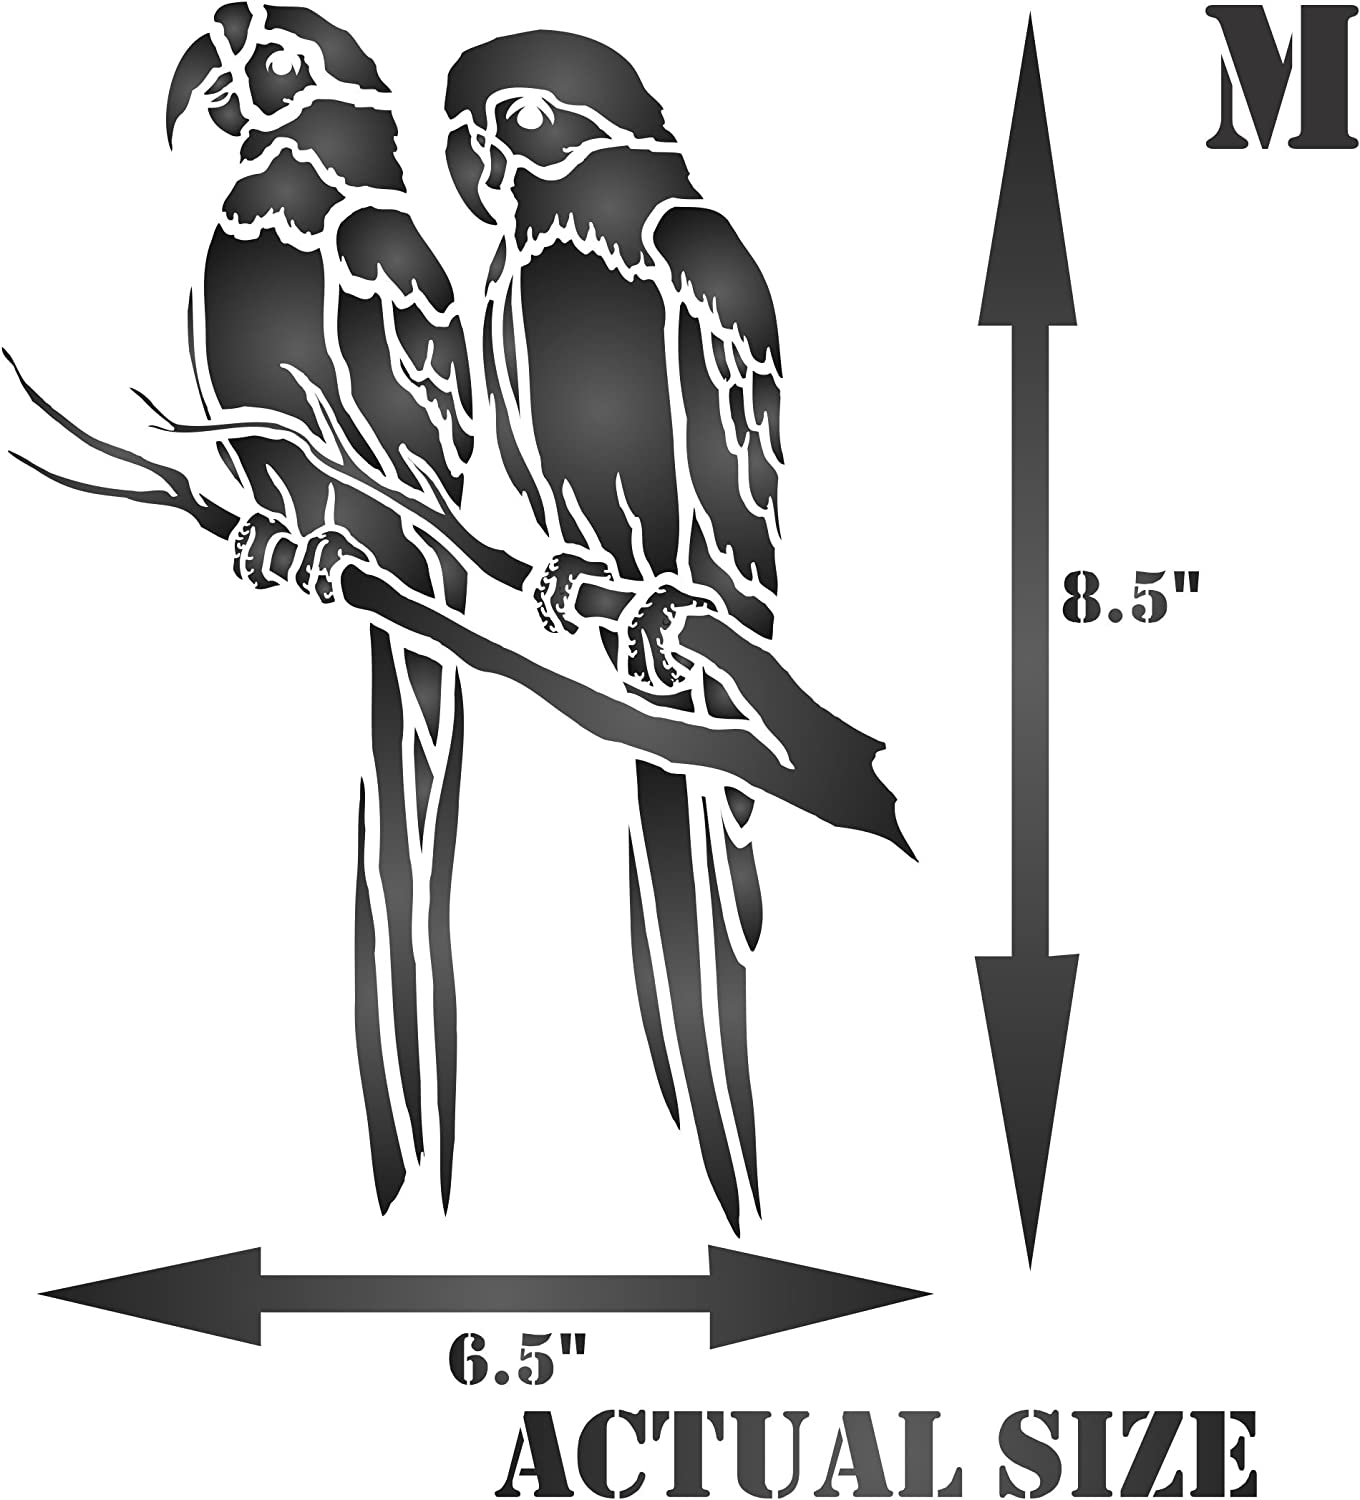 Use on Paper Projects Scrapbook Journal Walls Floors Fabric Furniture Glass Wood etc. - Reusable South American Macaw Animal Wildlife Branch Wall Stencil Template S 12.5 x 16.5cm Parrot Stencil